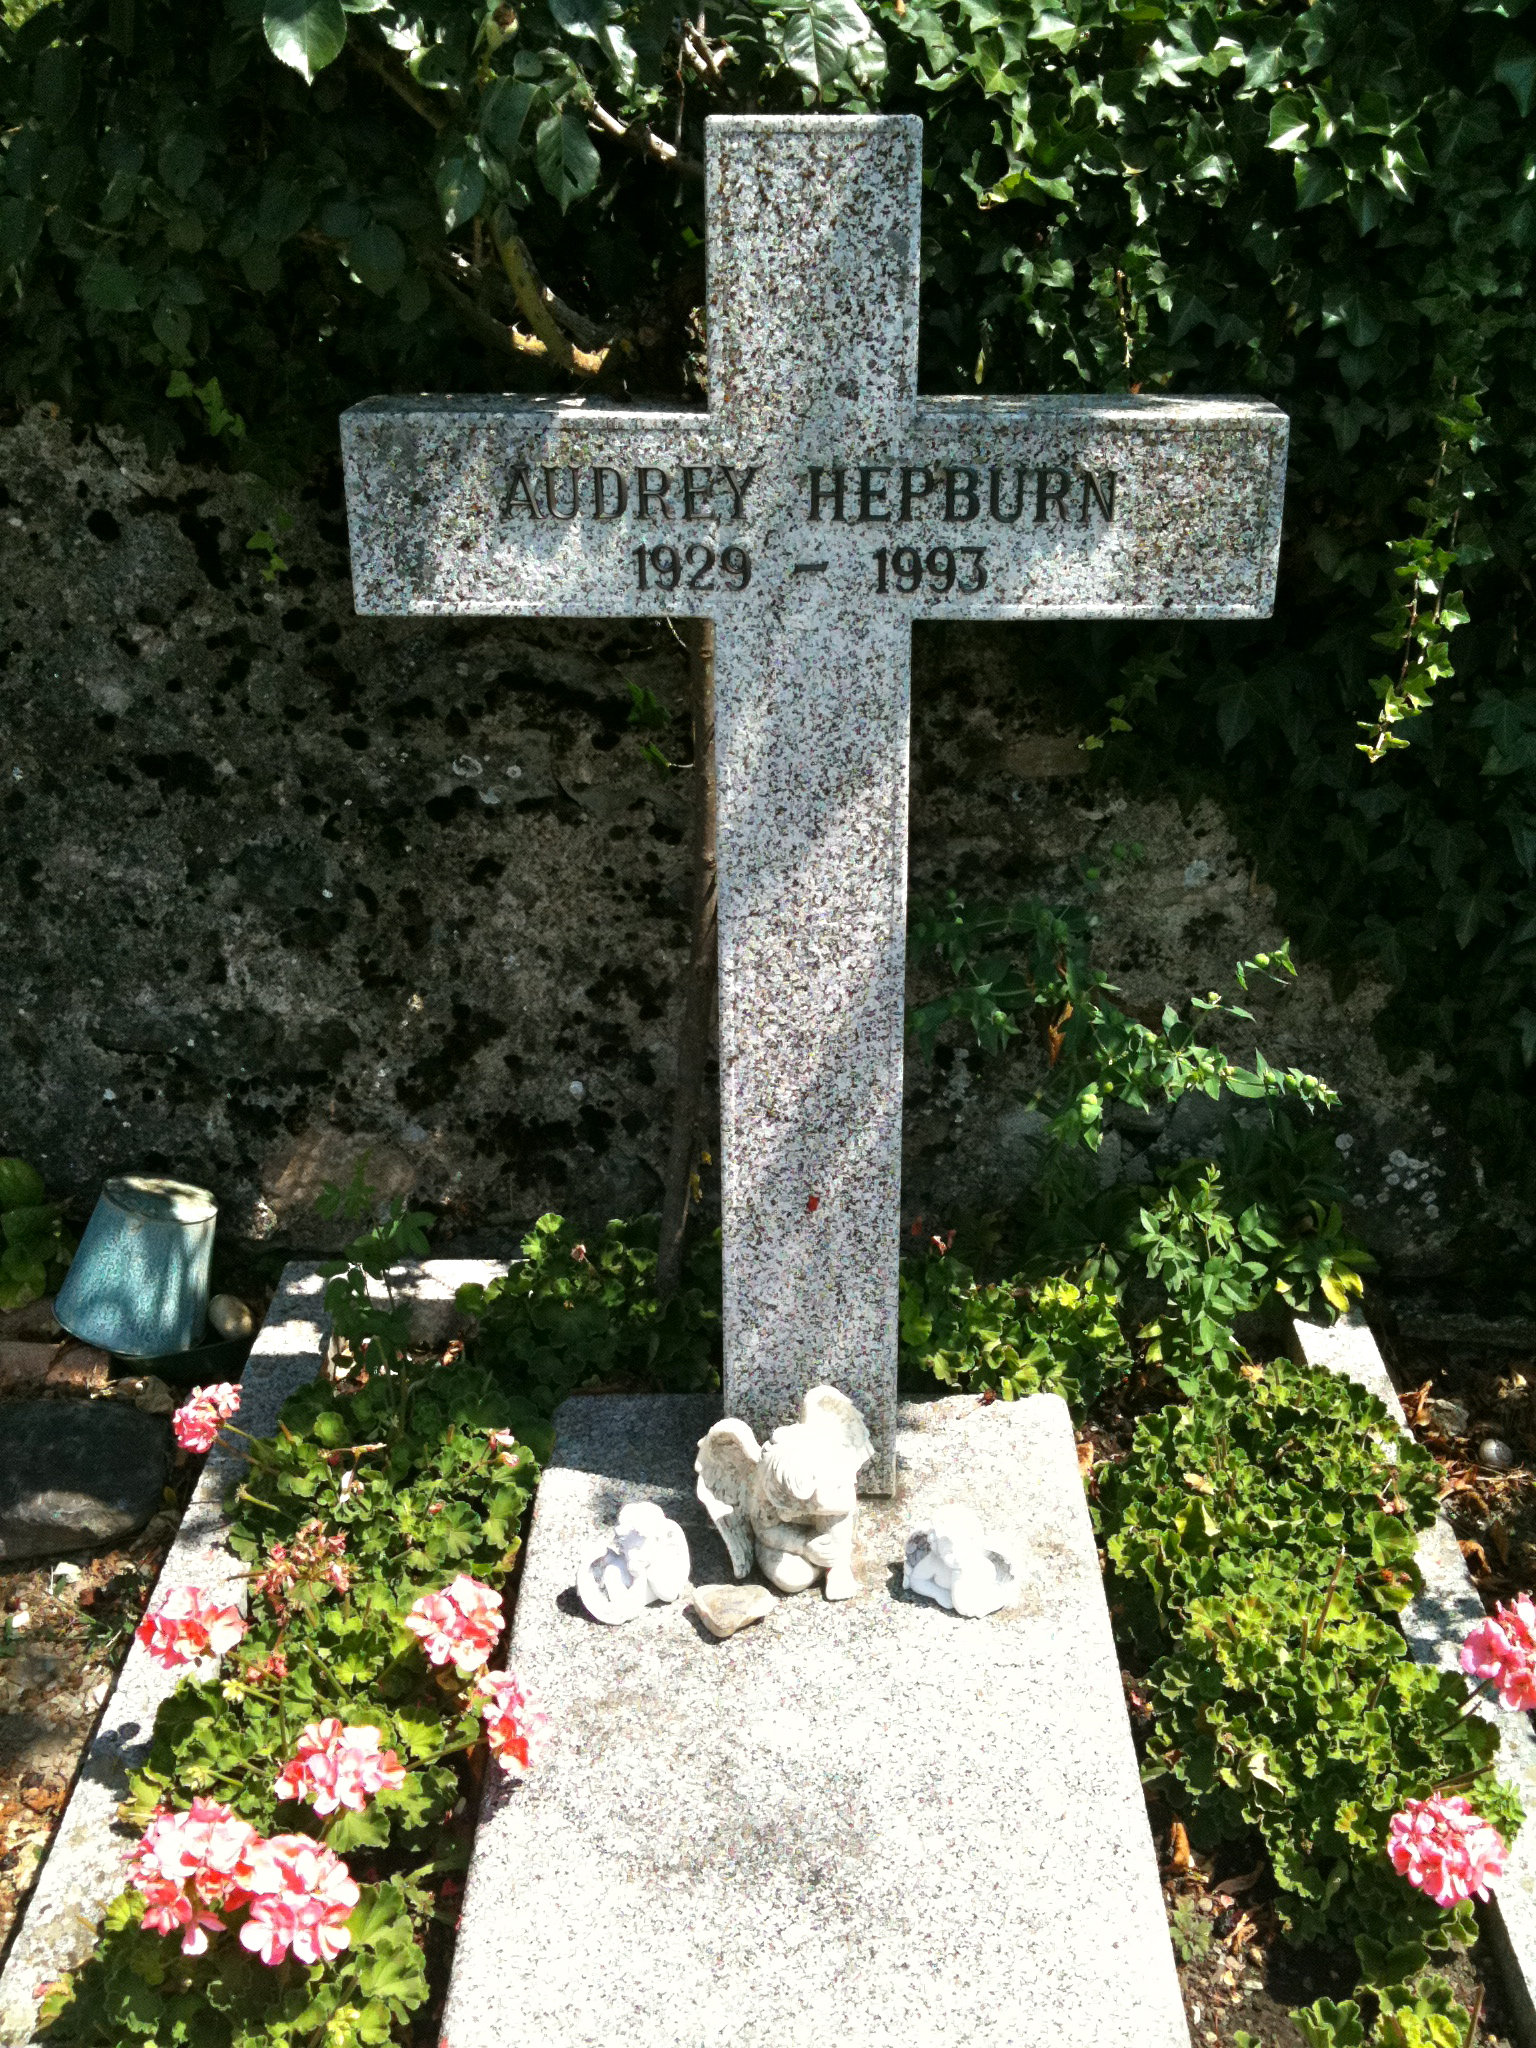 File:Tombe d'Audrey HE...